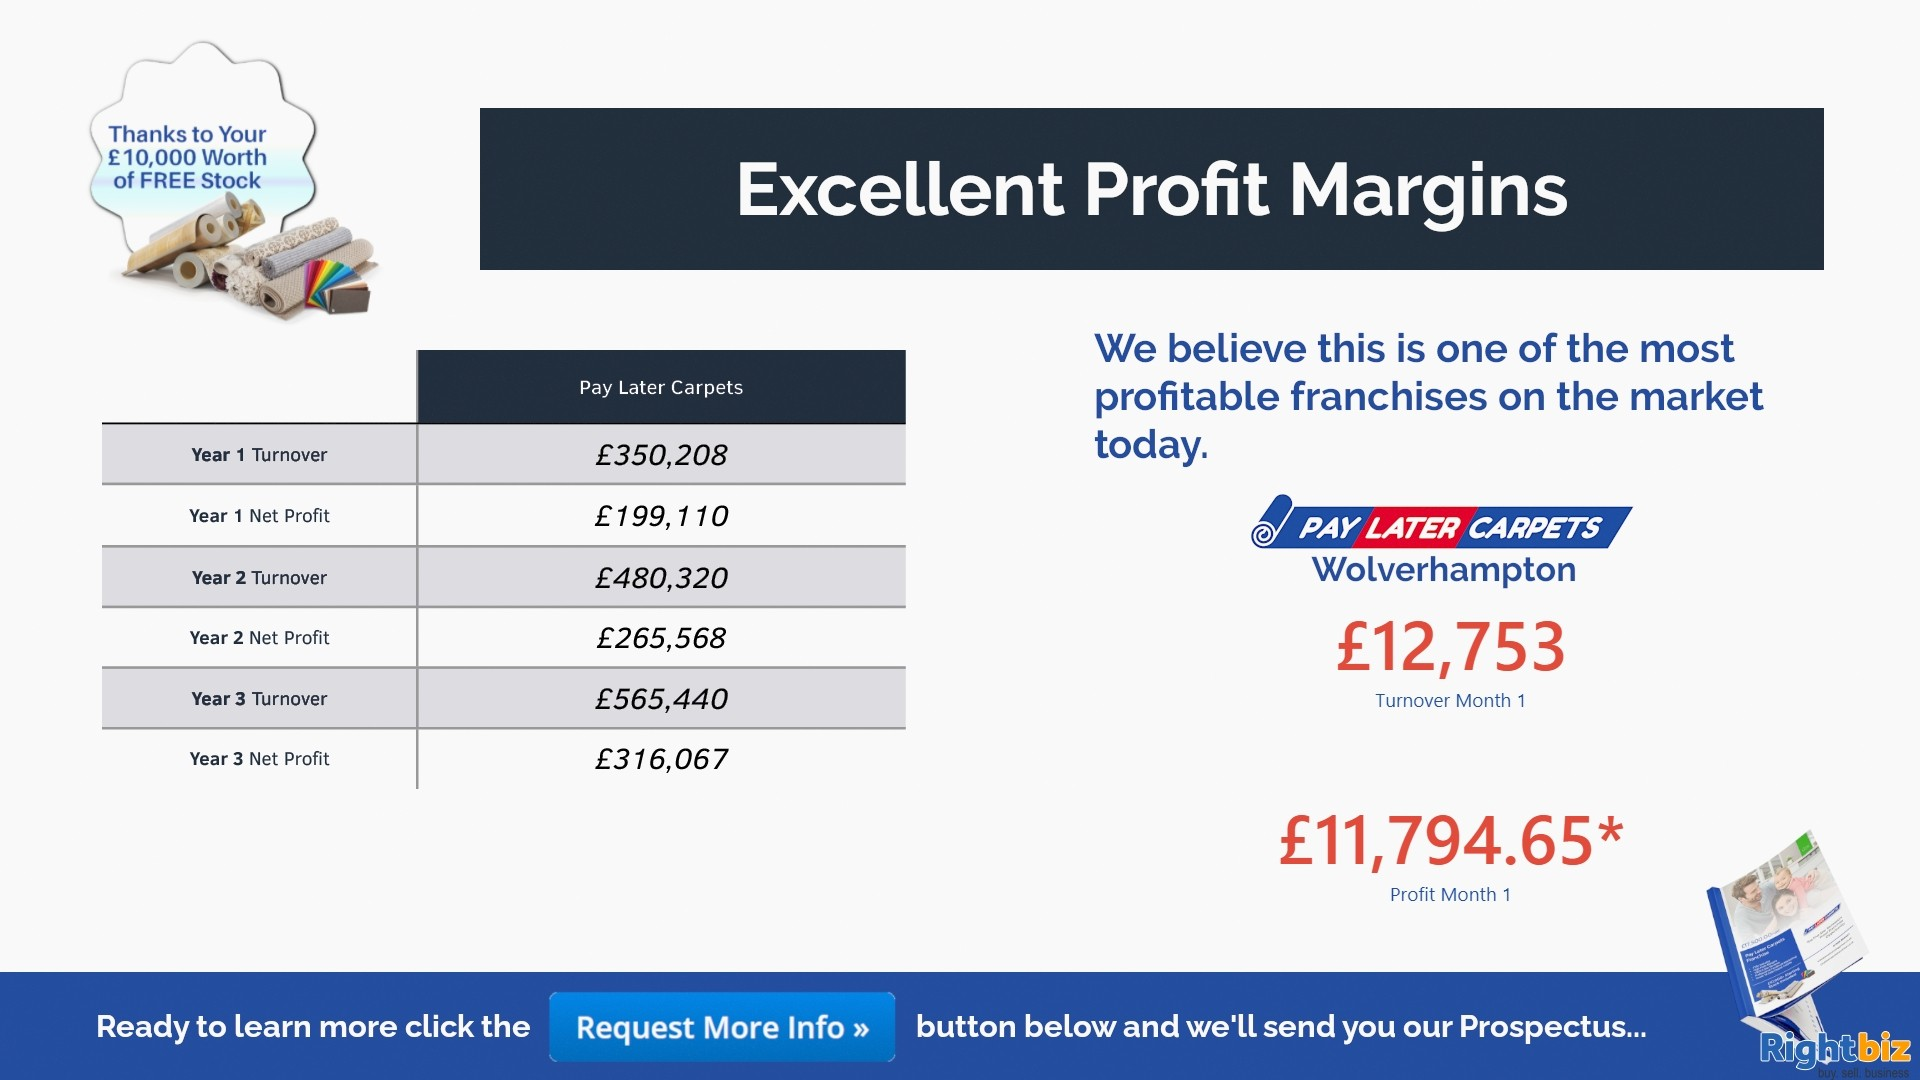 Pay Later Carpets Franchise Glasgow Our First Franchisee Made £11,000+ Profit in Month One - Image 3